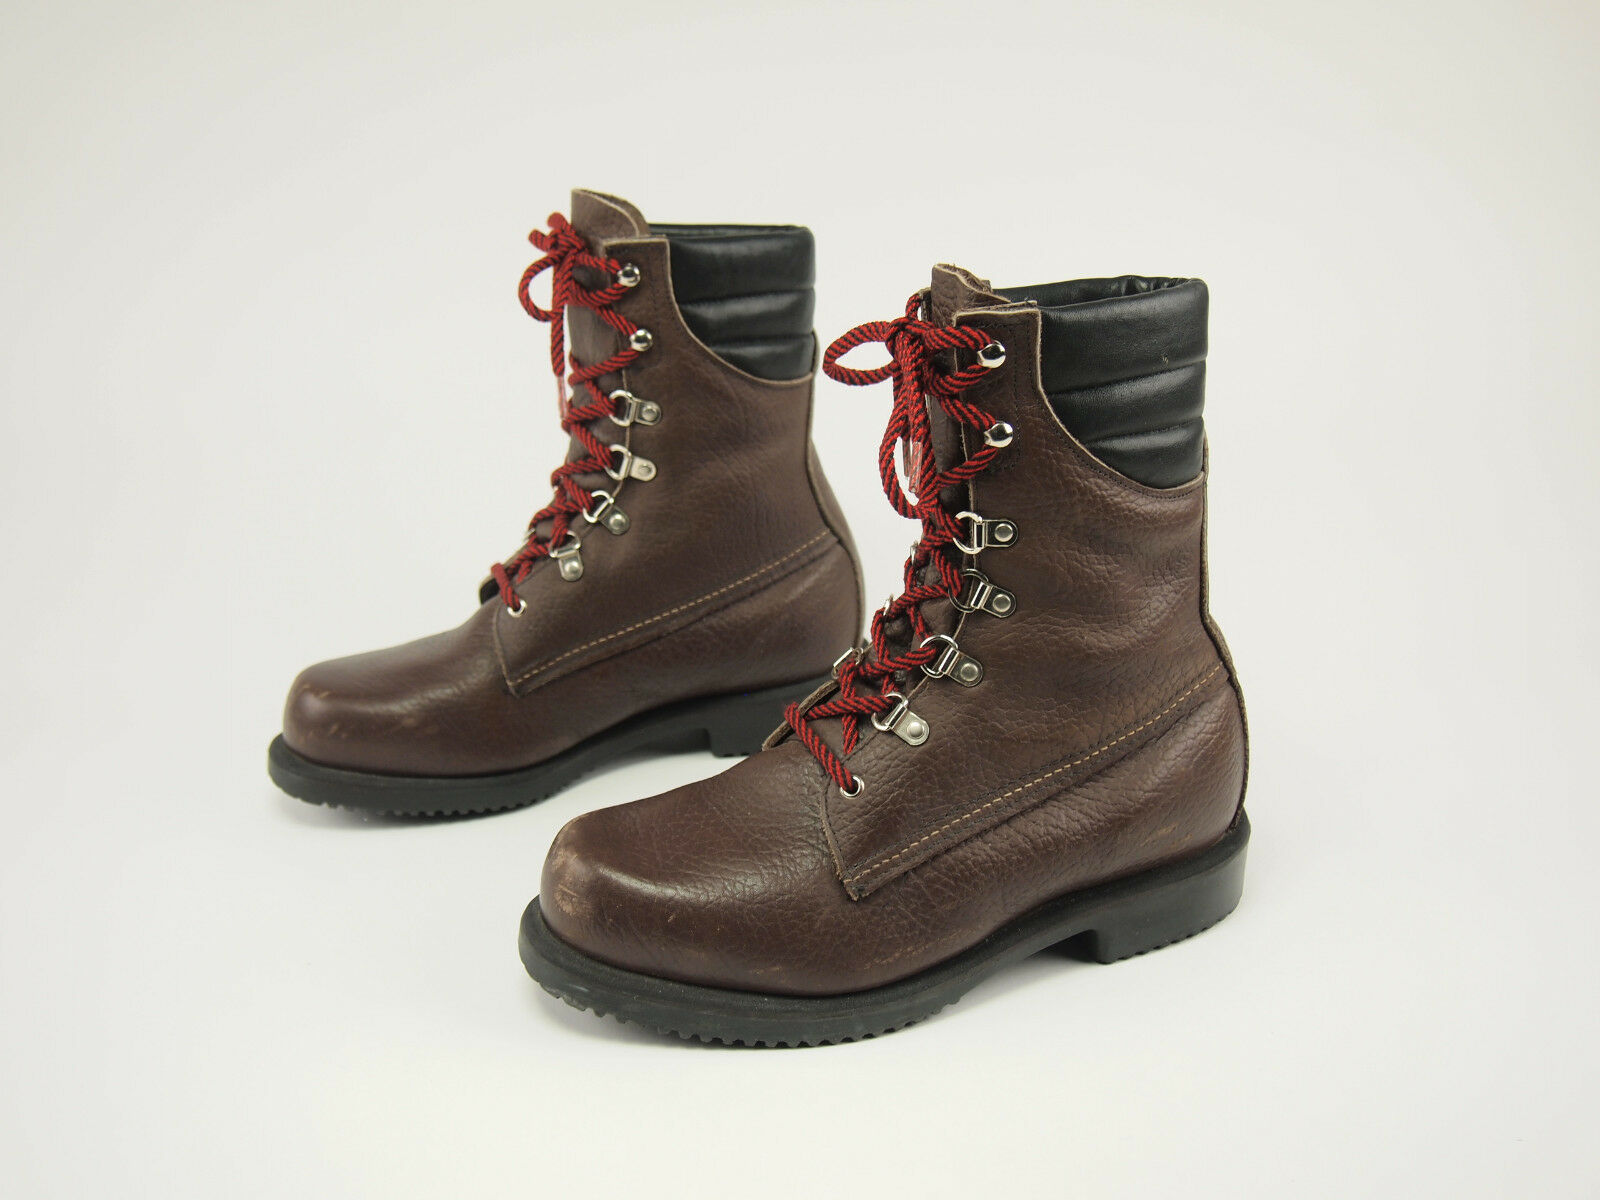 1980s IRISH SETTER Red Wing Vintage Winter GTX Hunting Sport Boots 7 D